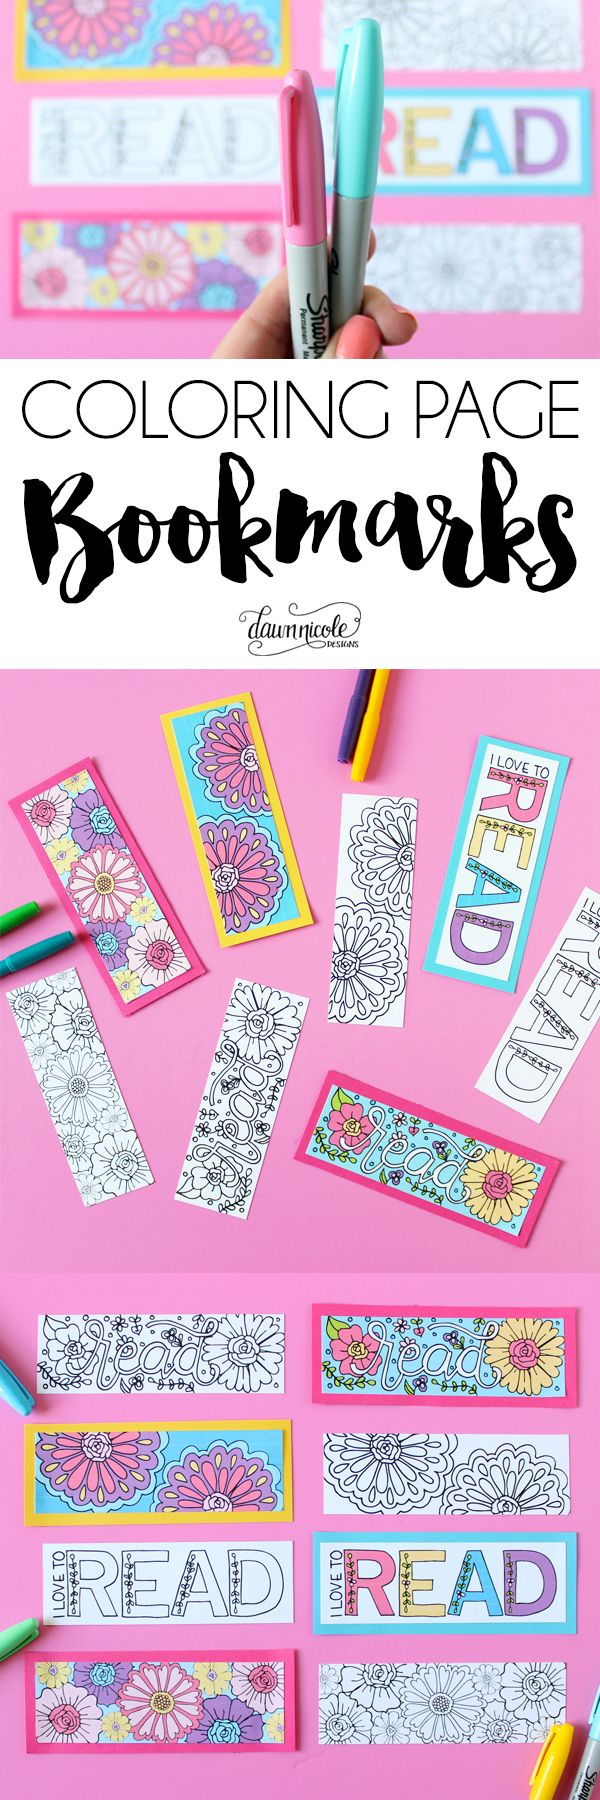 Valentine bookmark to color - Free Summer Coloring Page Bookmarks Color Your Own Or Grab The Already Colored